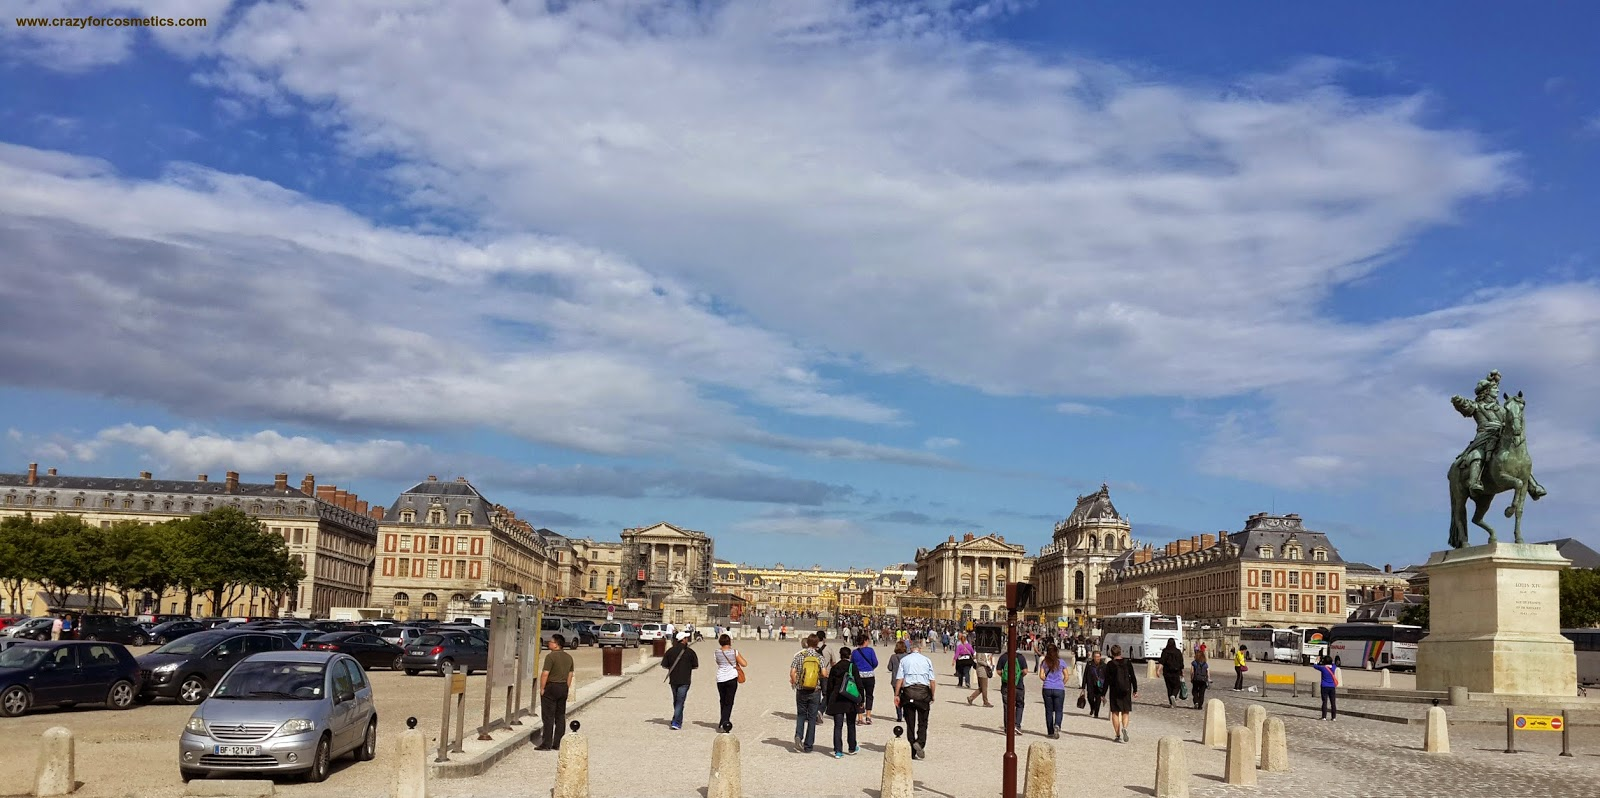 palace of versailles photos